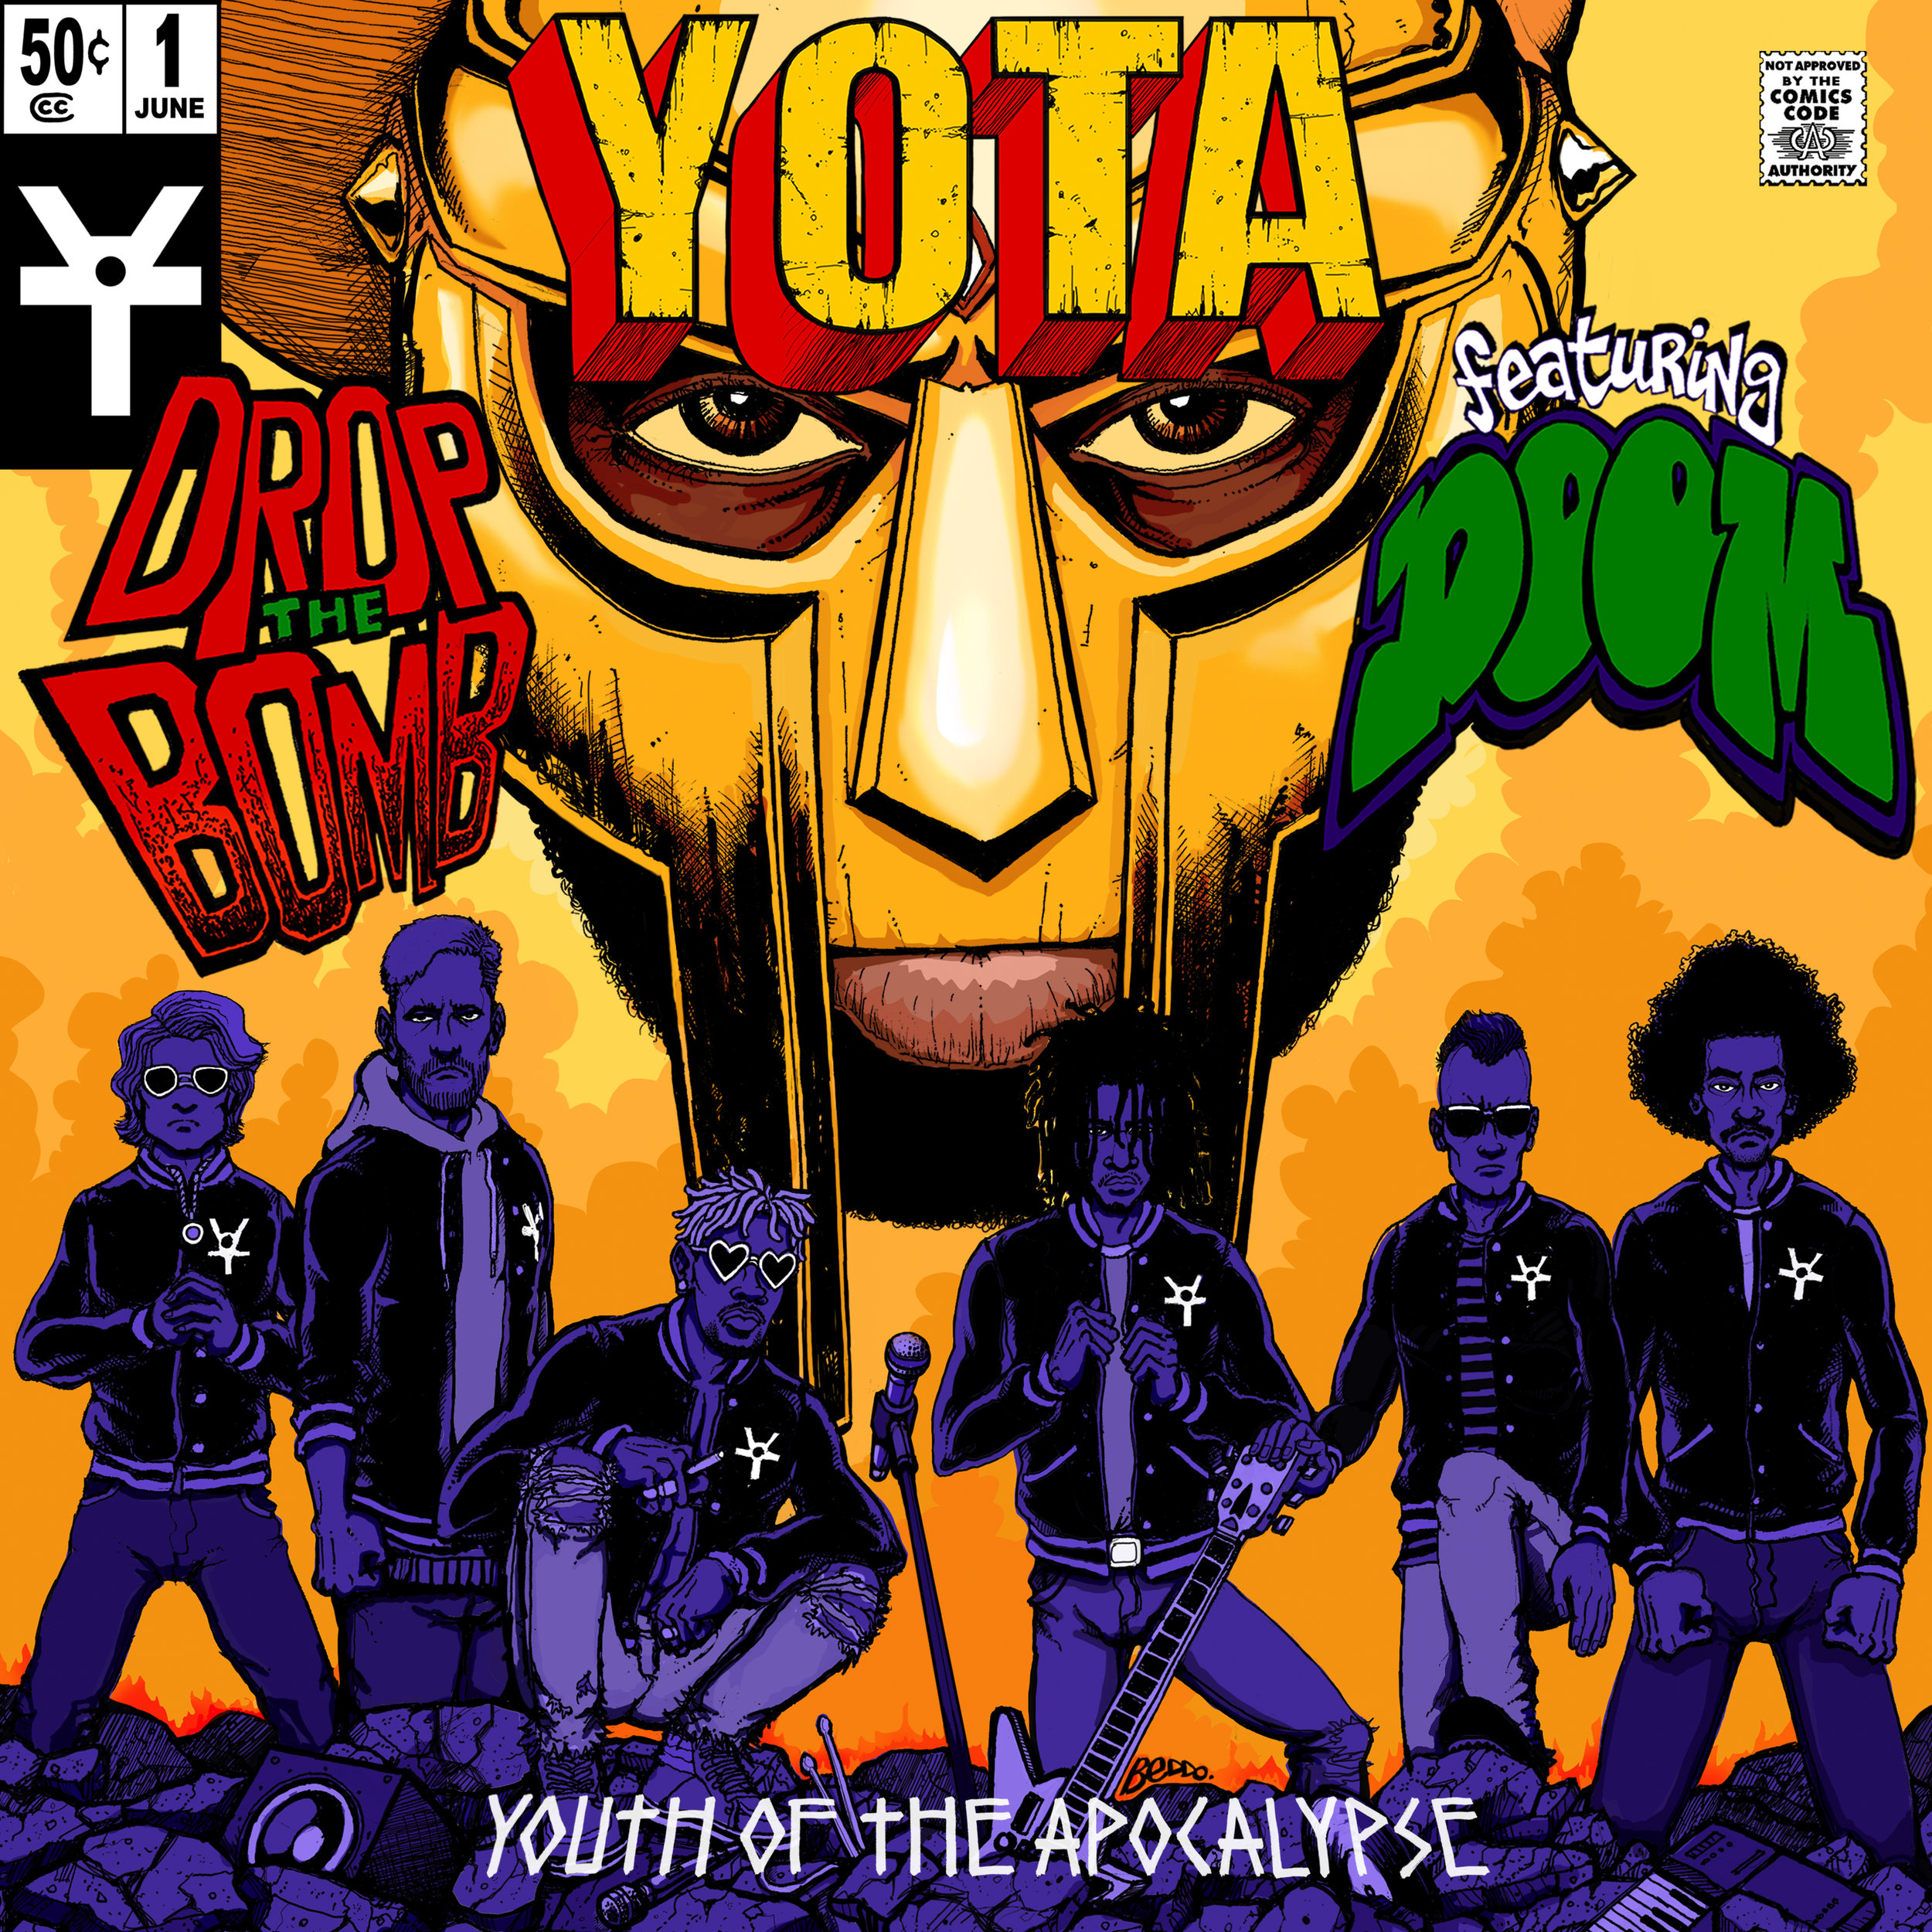 Drop The Bomb (single) - YOTA: Youth of the apocalypse